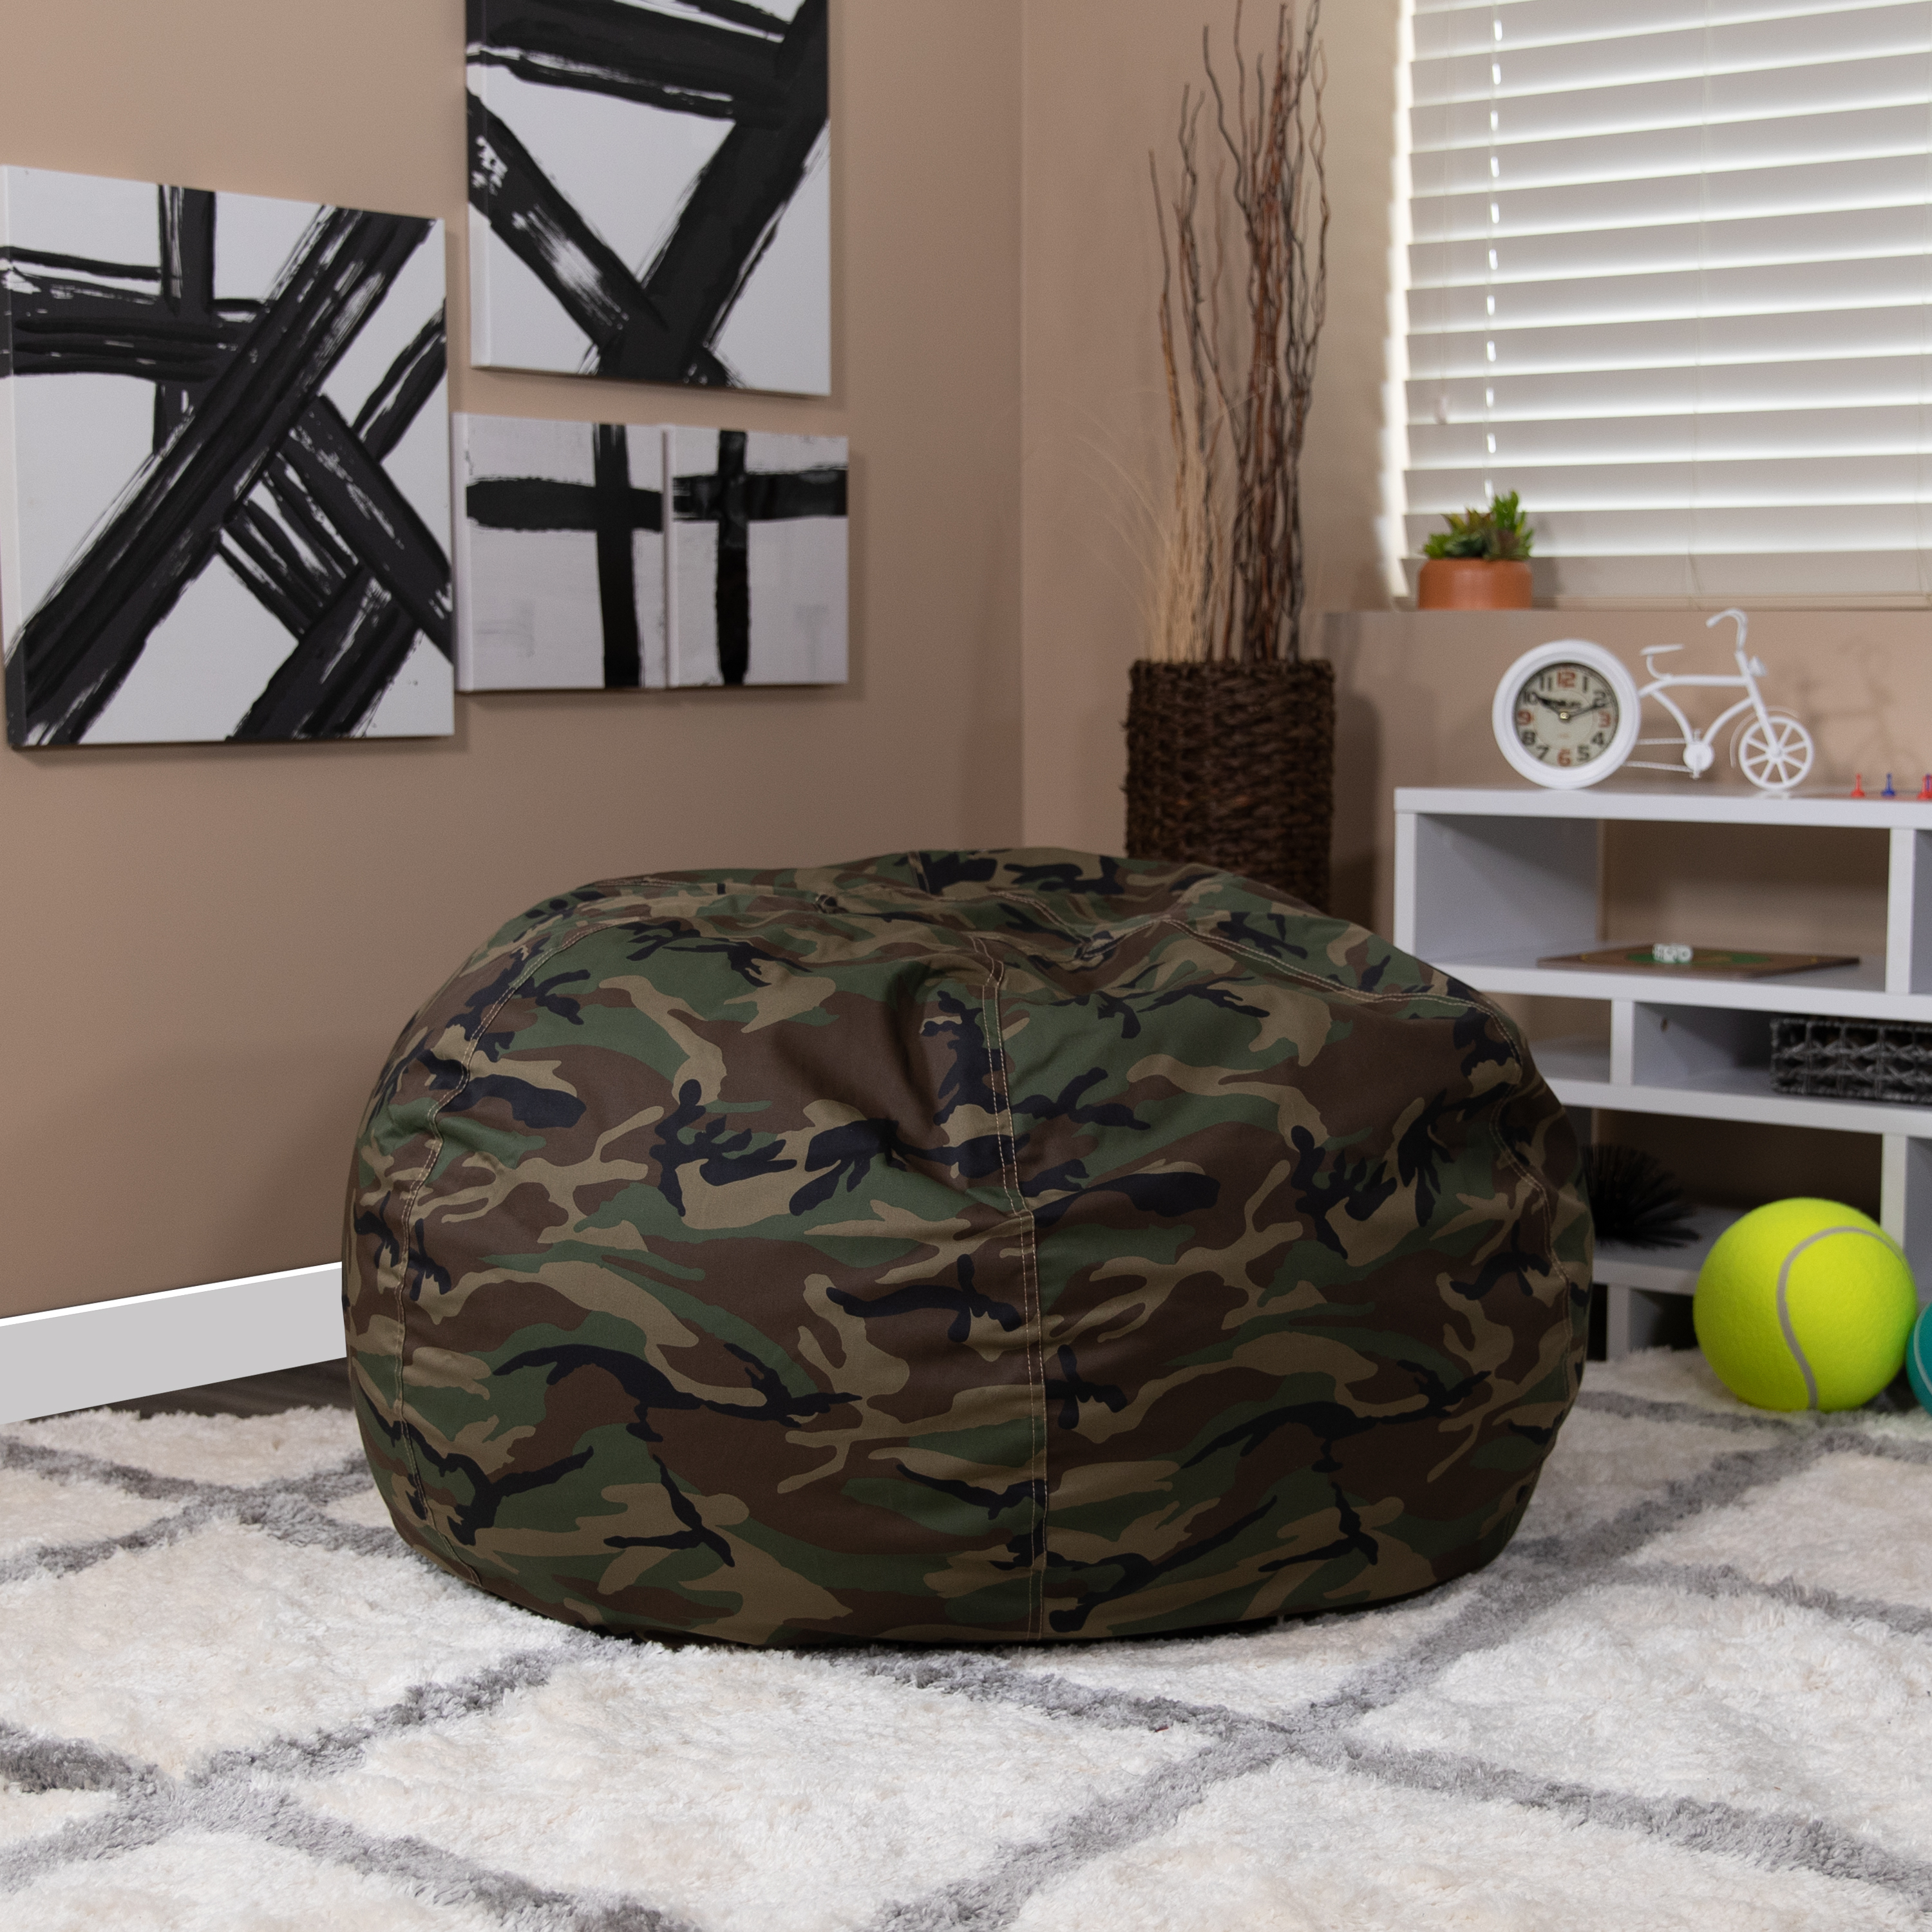 Strange Oversized Bean Bag Chair For Kids And Adults Gmtry Best Dining Table And Chair Ideas Images Gmtryco